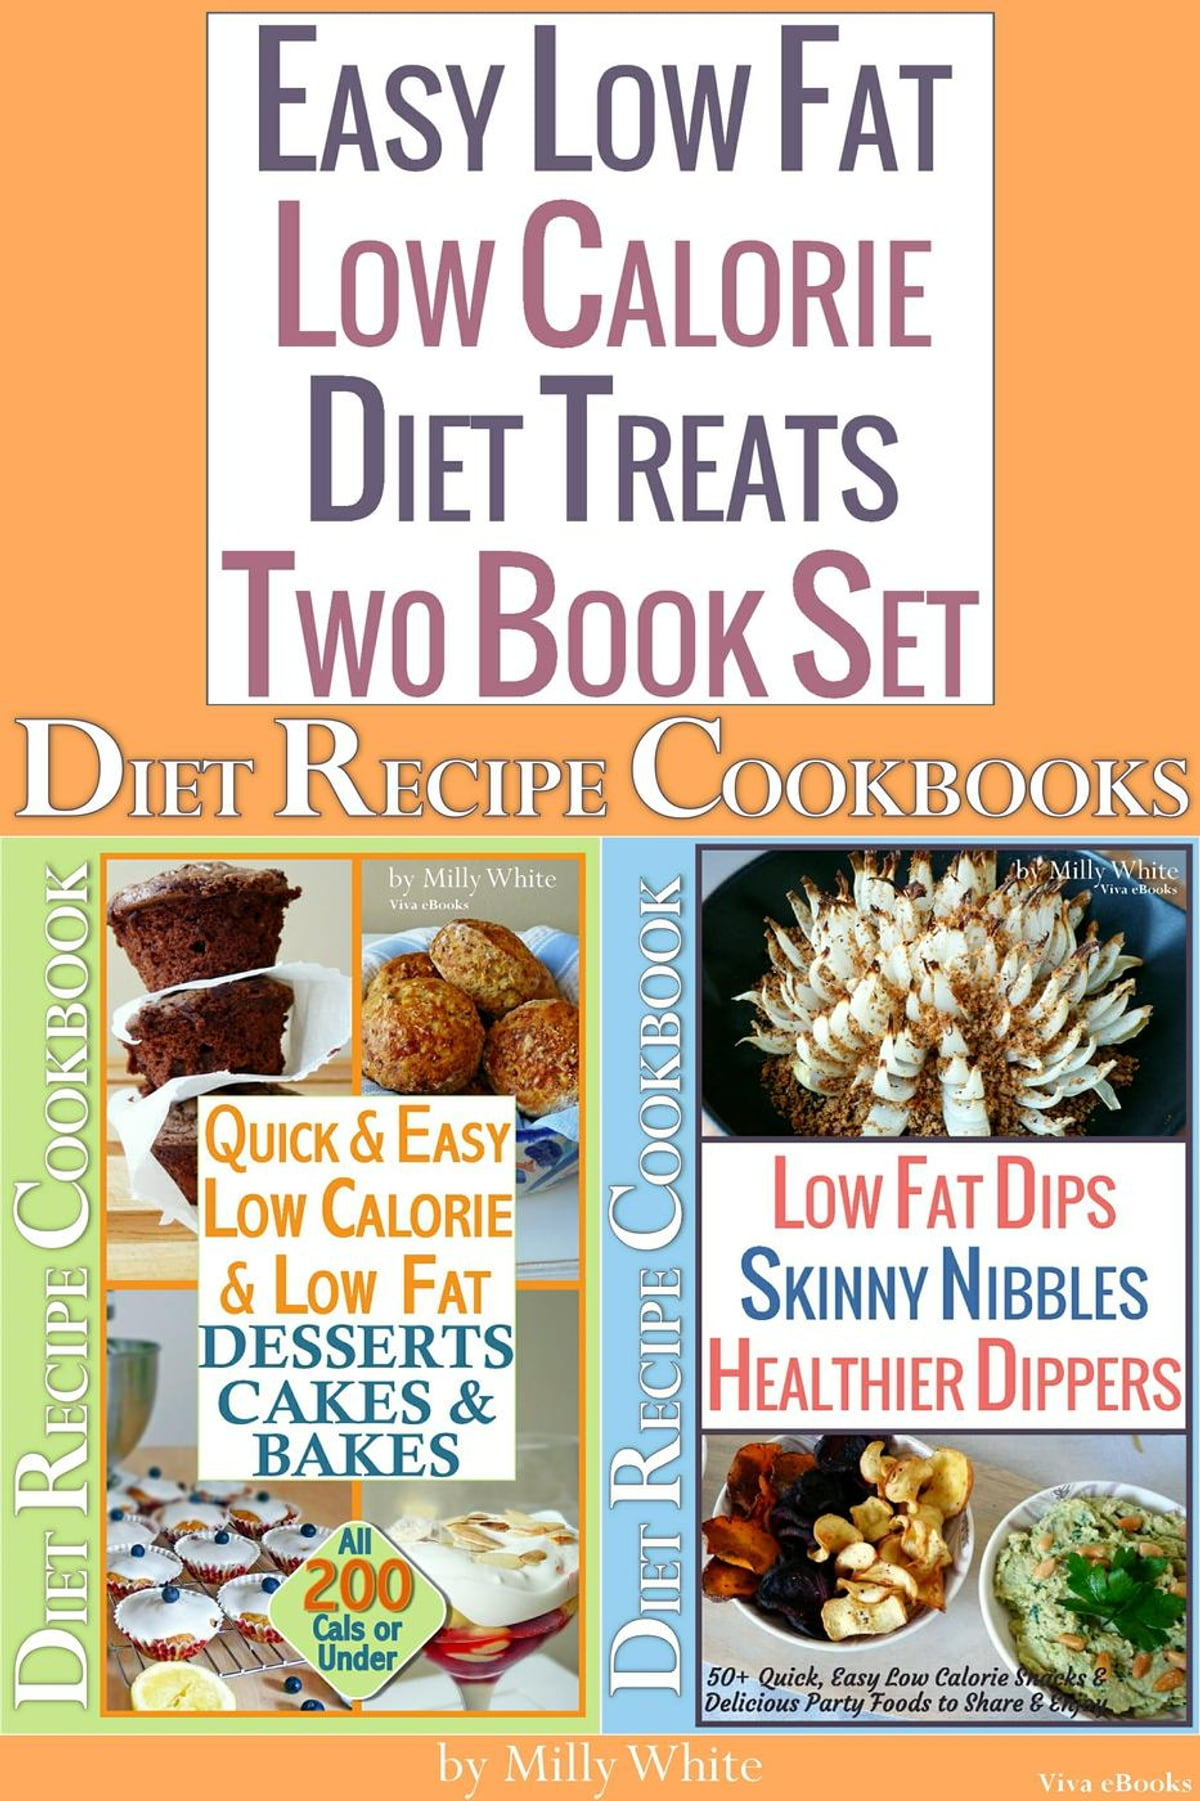 Easy Low Fat Low Calorie Diet Treats 2 Book Set: Diet Desserts Cakes &  Bakes Recipes + Low Fat Dips, Skinny Nibbles & Healthier Dippers Cookbook  all